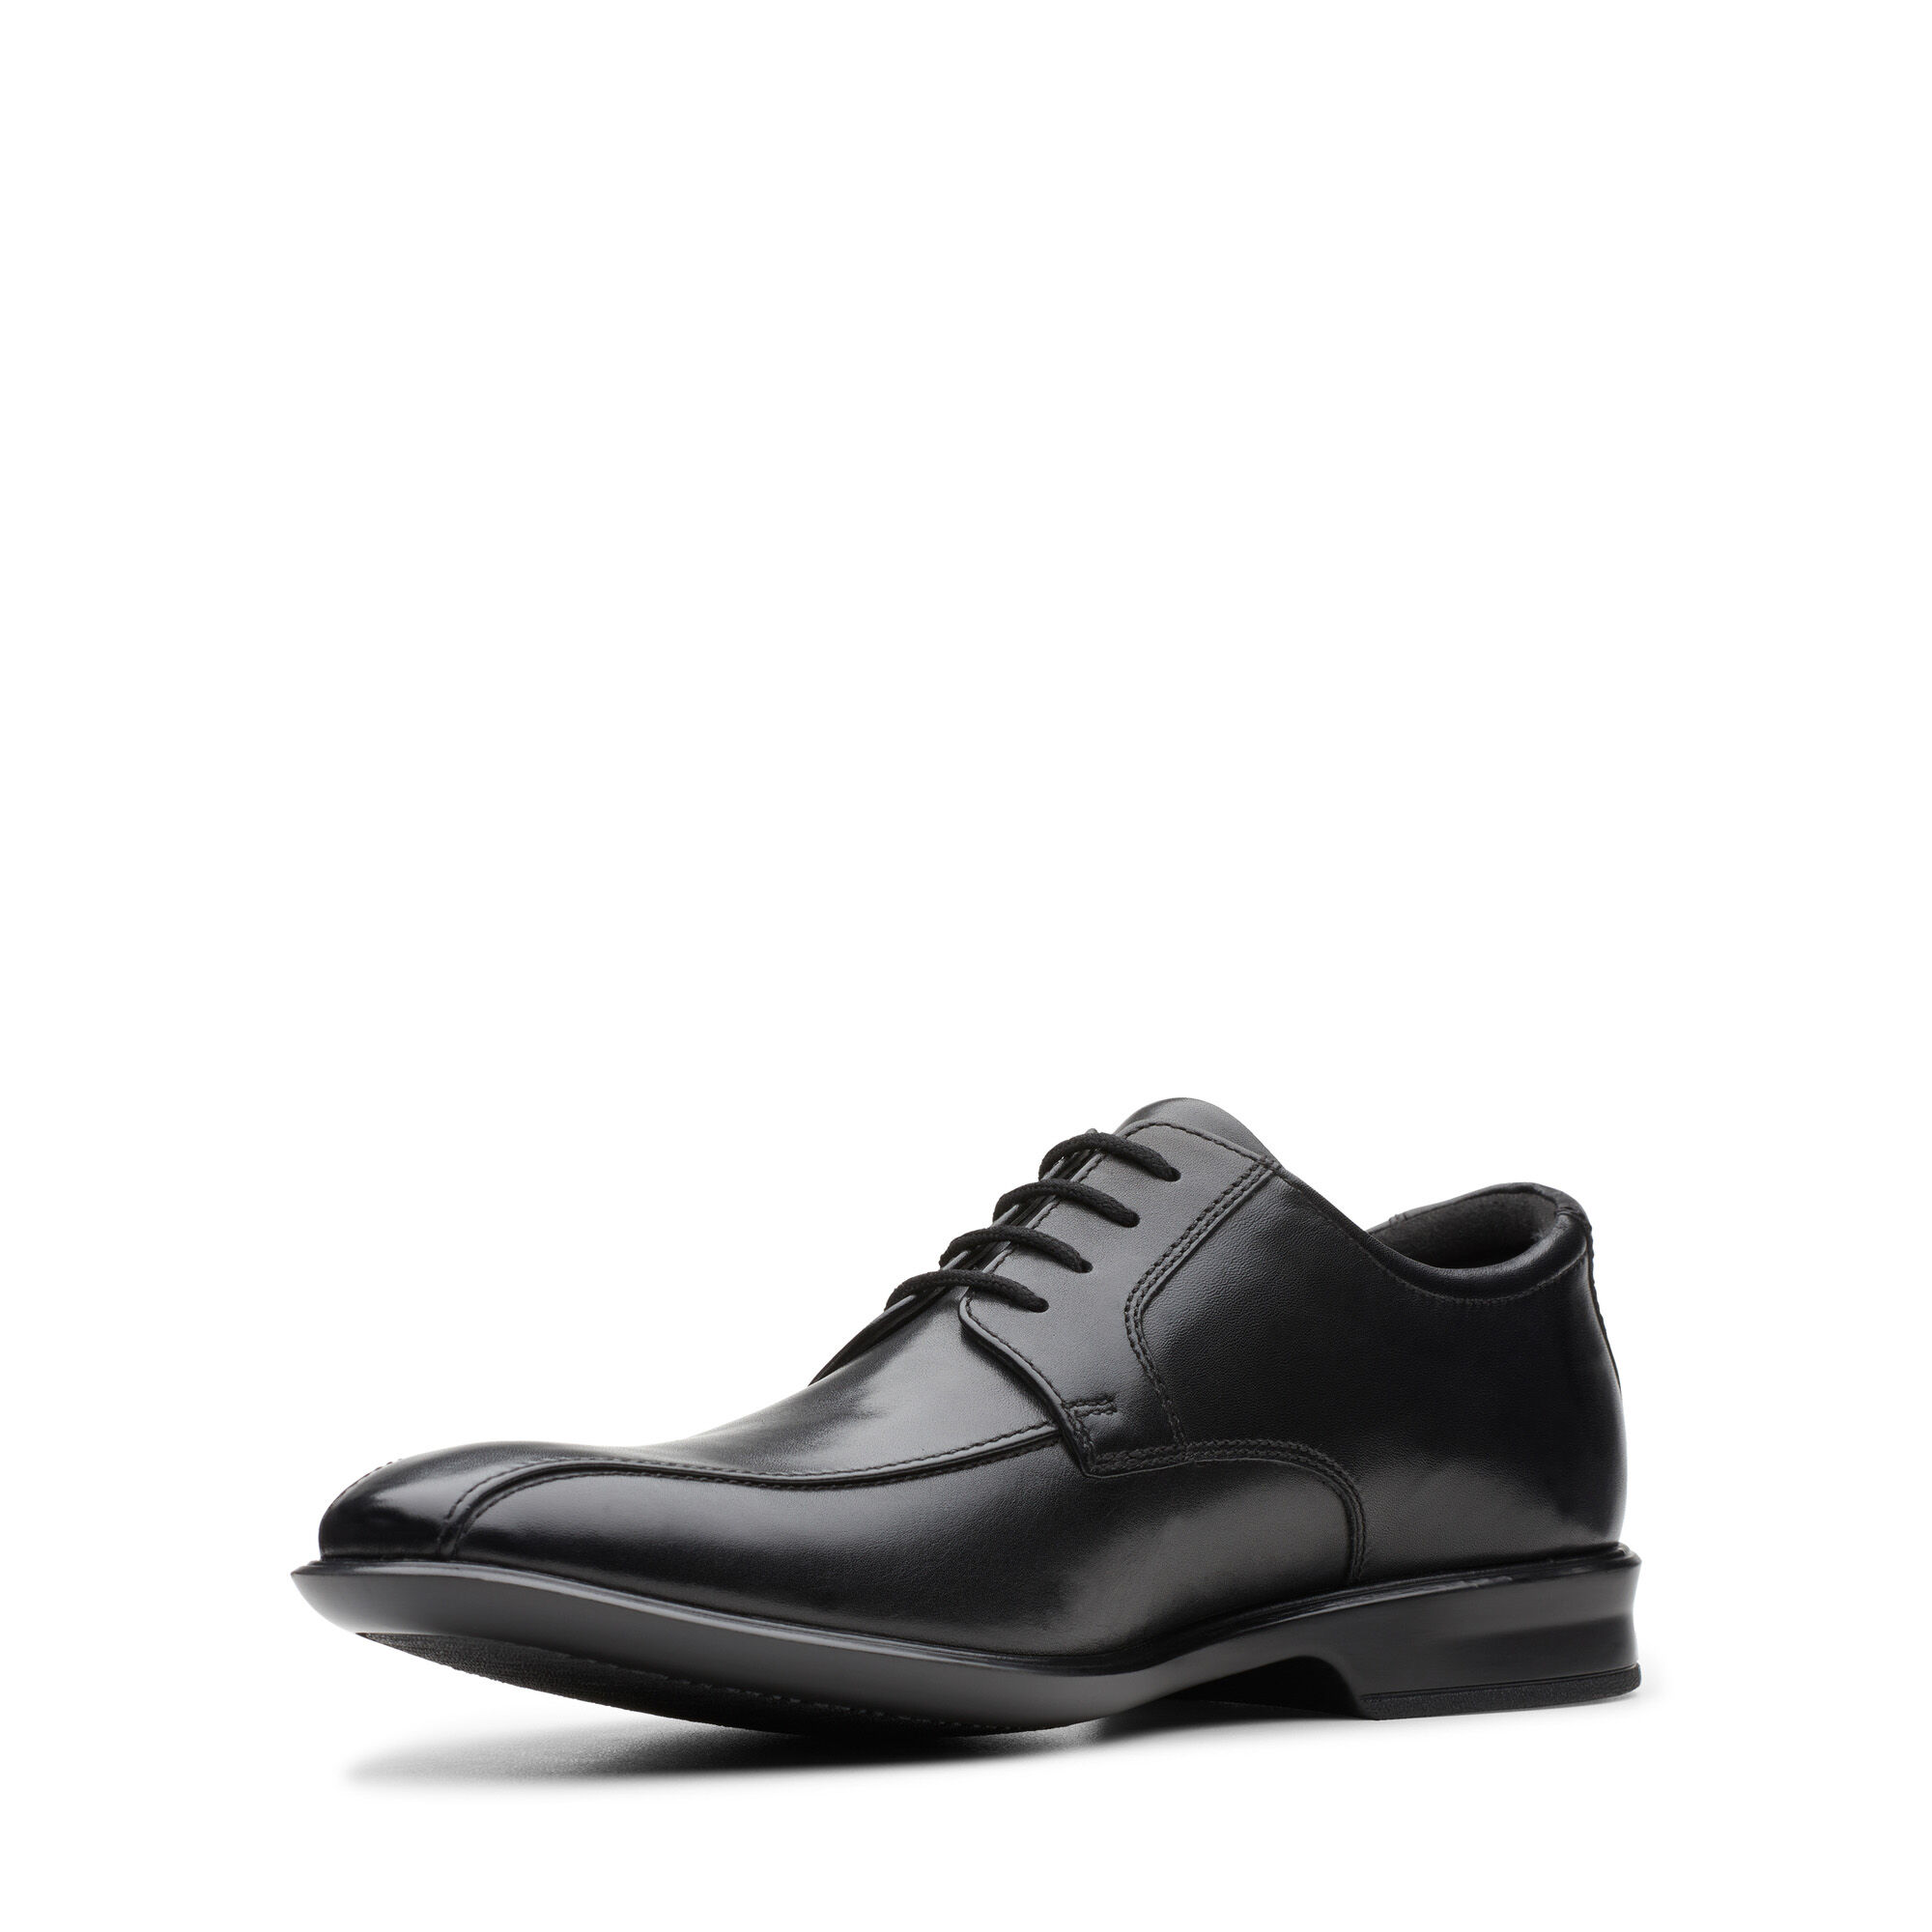 G Fit Mens Clarks /'Bensley Run/' Leather Smart Lace Up Shoes